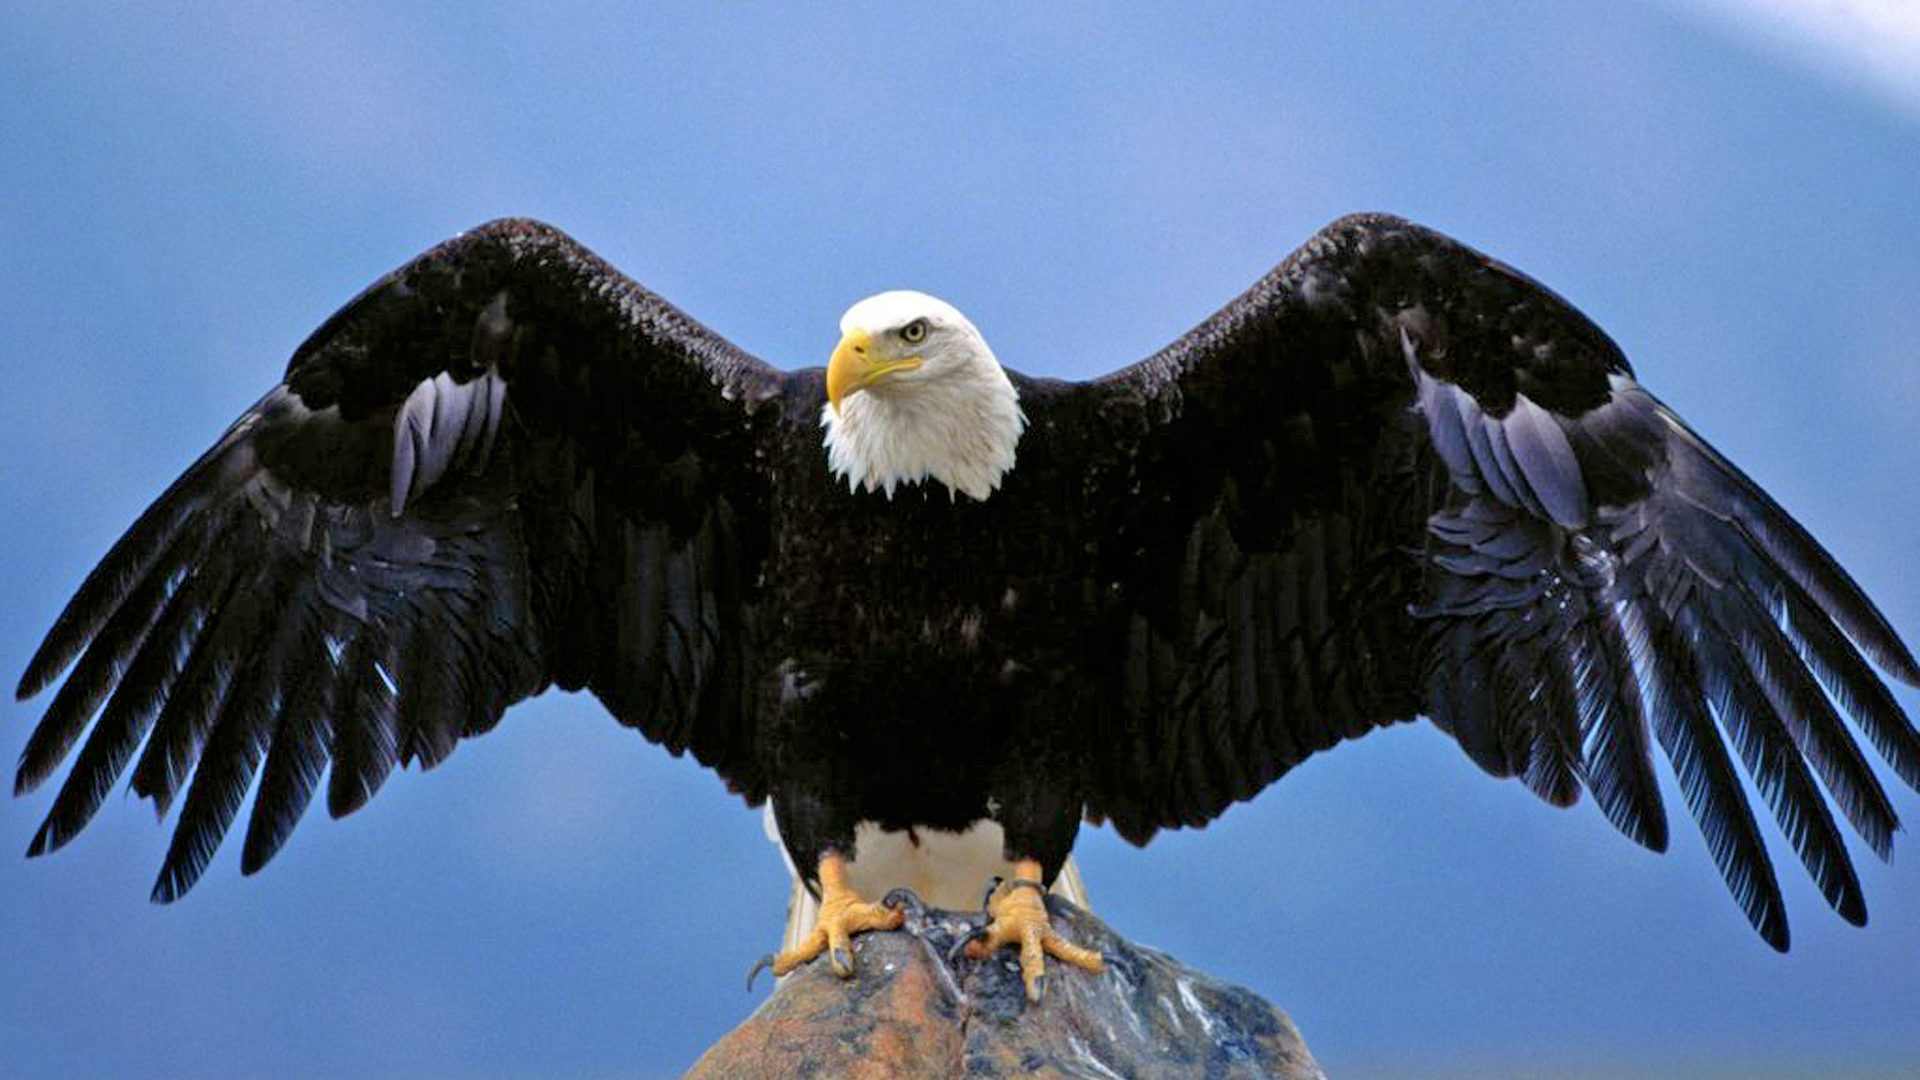 Car Wallpaper Hd 1080p Free Download For Mobile Bald Eagle Spread Wings Desktop Hd Wallpaper For Pc Tablet